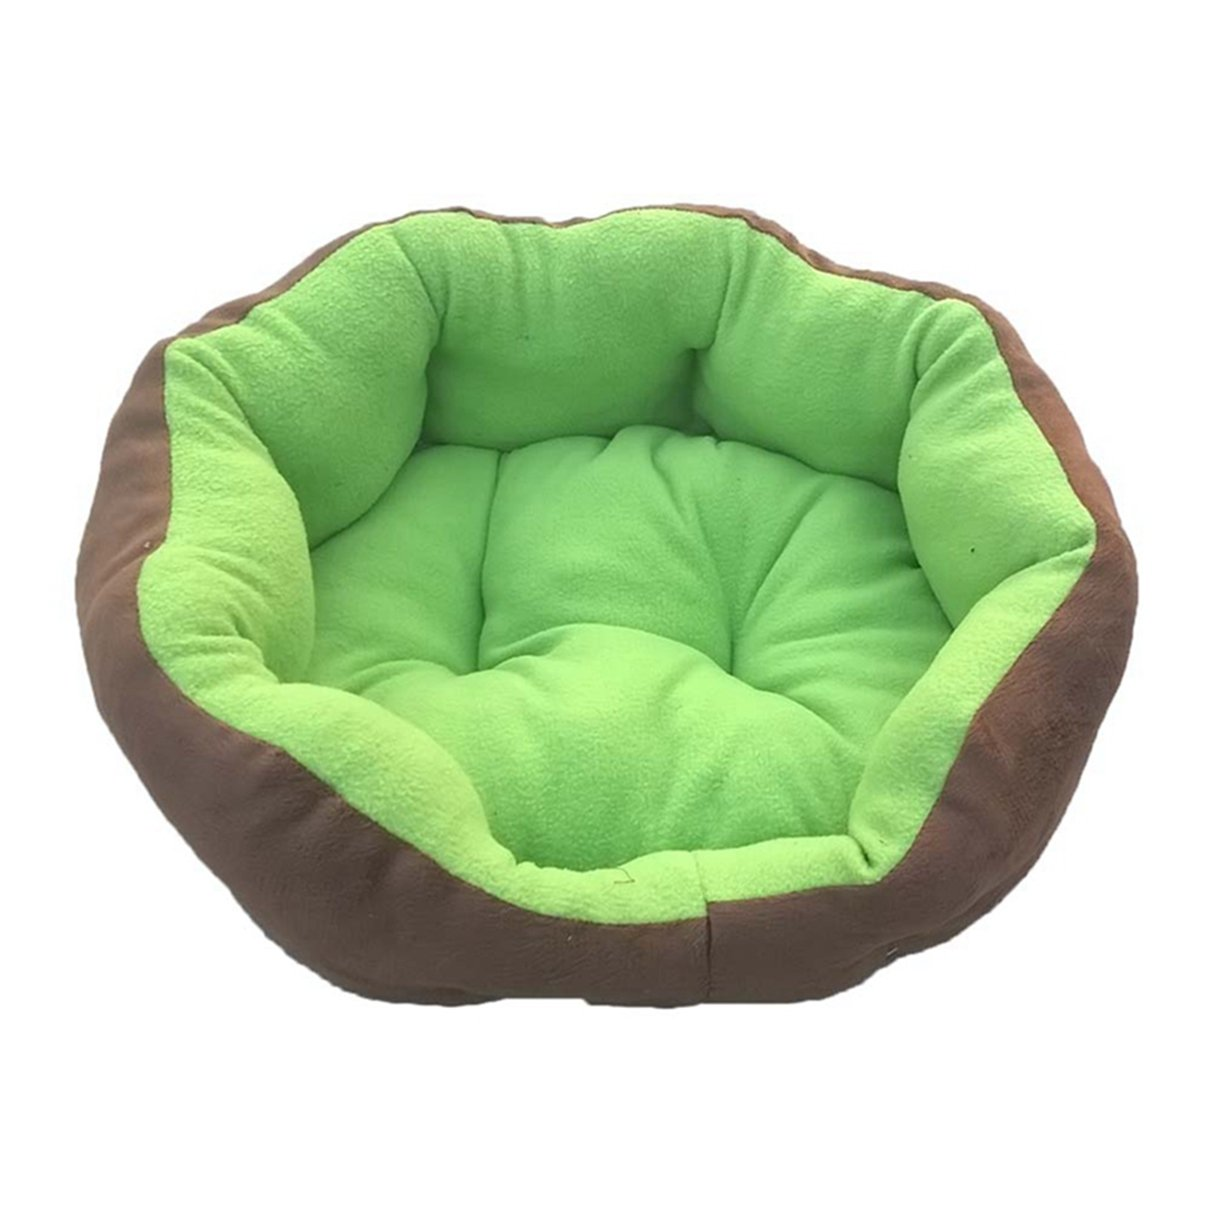 Green S Green S Pet Dog Bed Winter Warm Kitten Kennels Thick Soft Pet Nest Cat Sofa Puppy Mat Animals Pad Pet Supplies House for Small Large Dogs